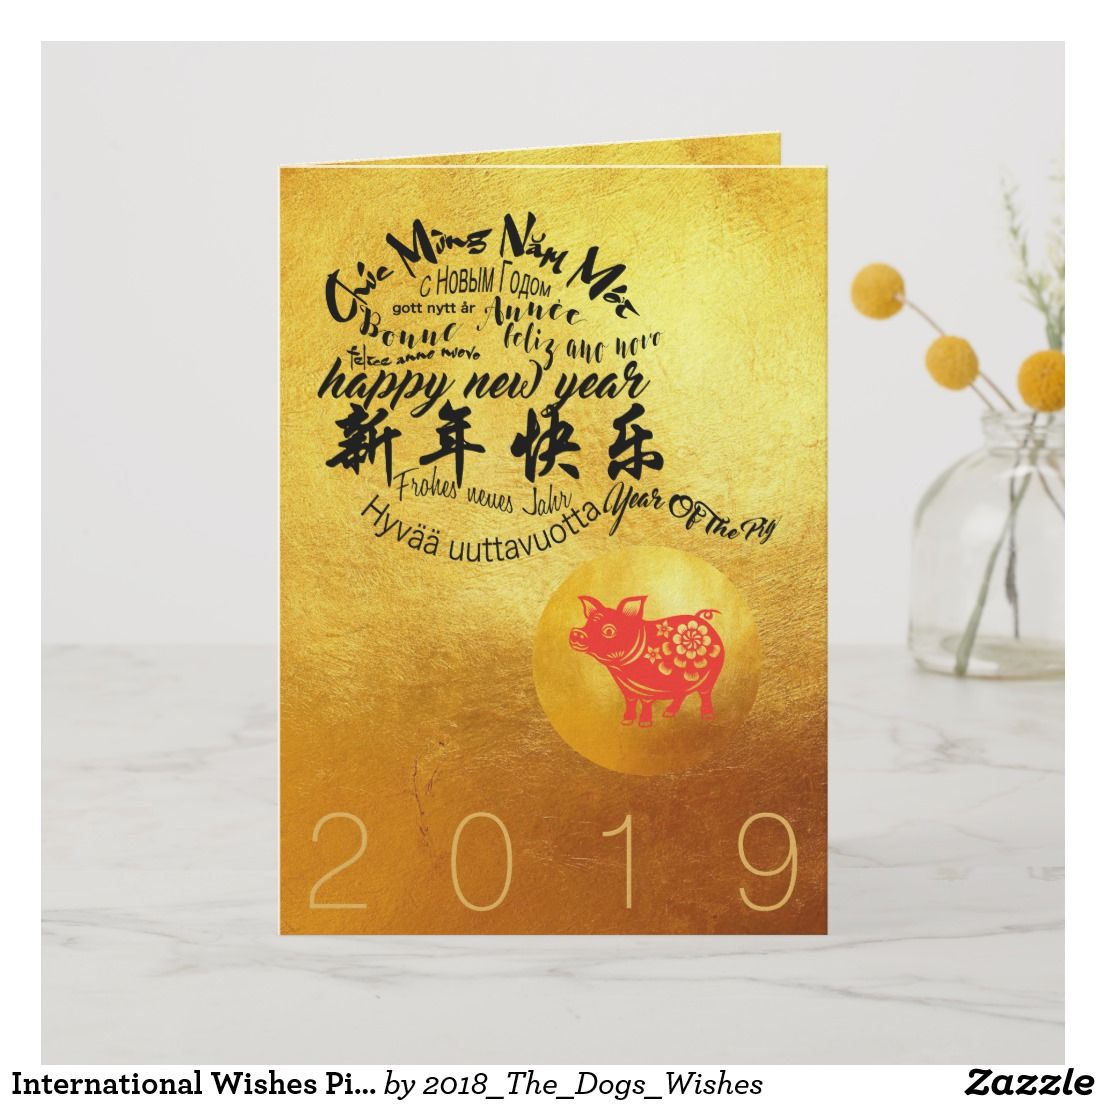 International Wishes Pig Year 2019 Golden Greetng Card